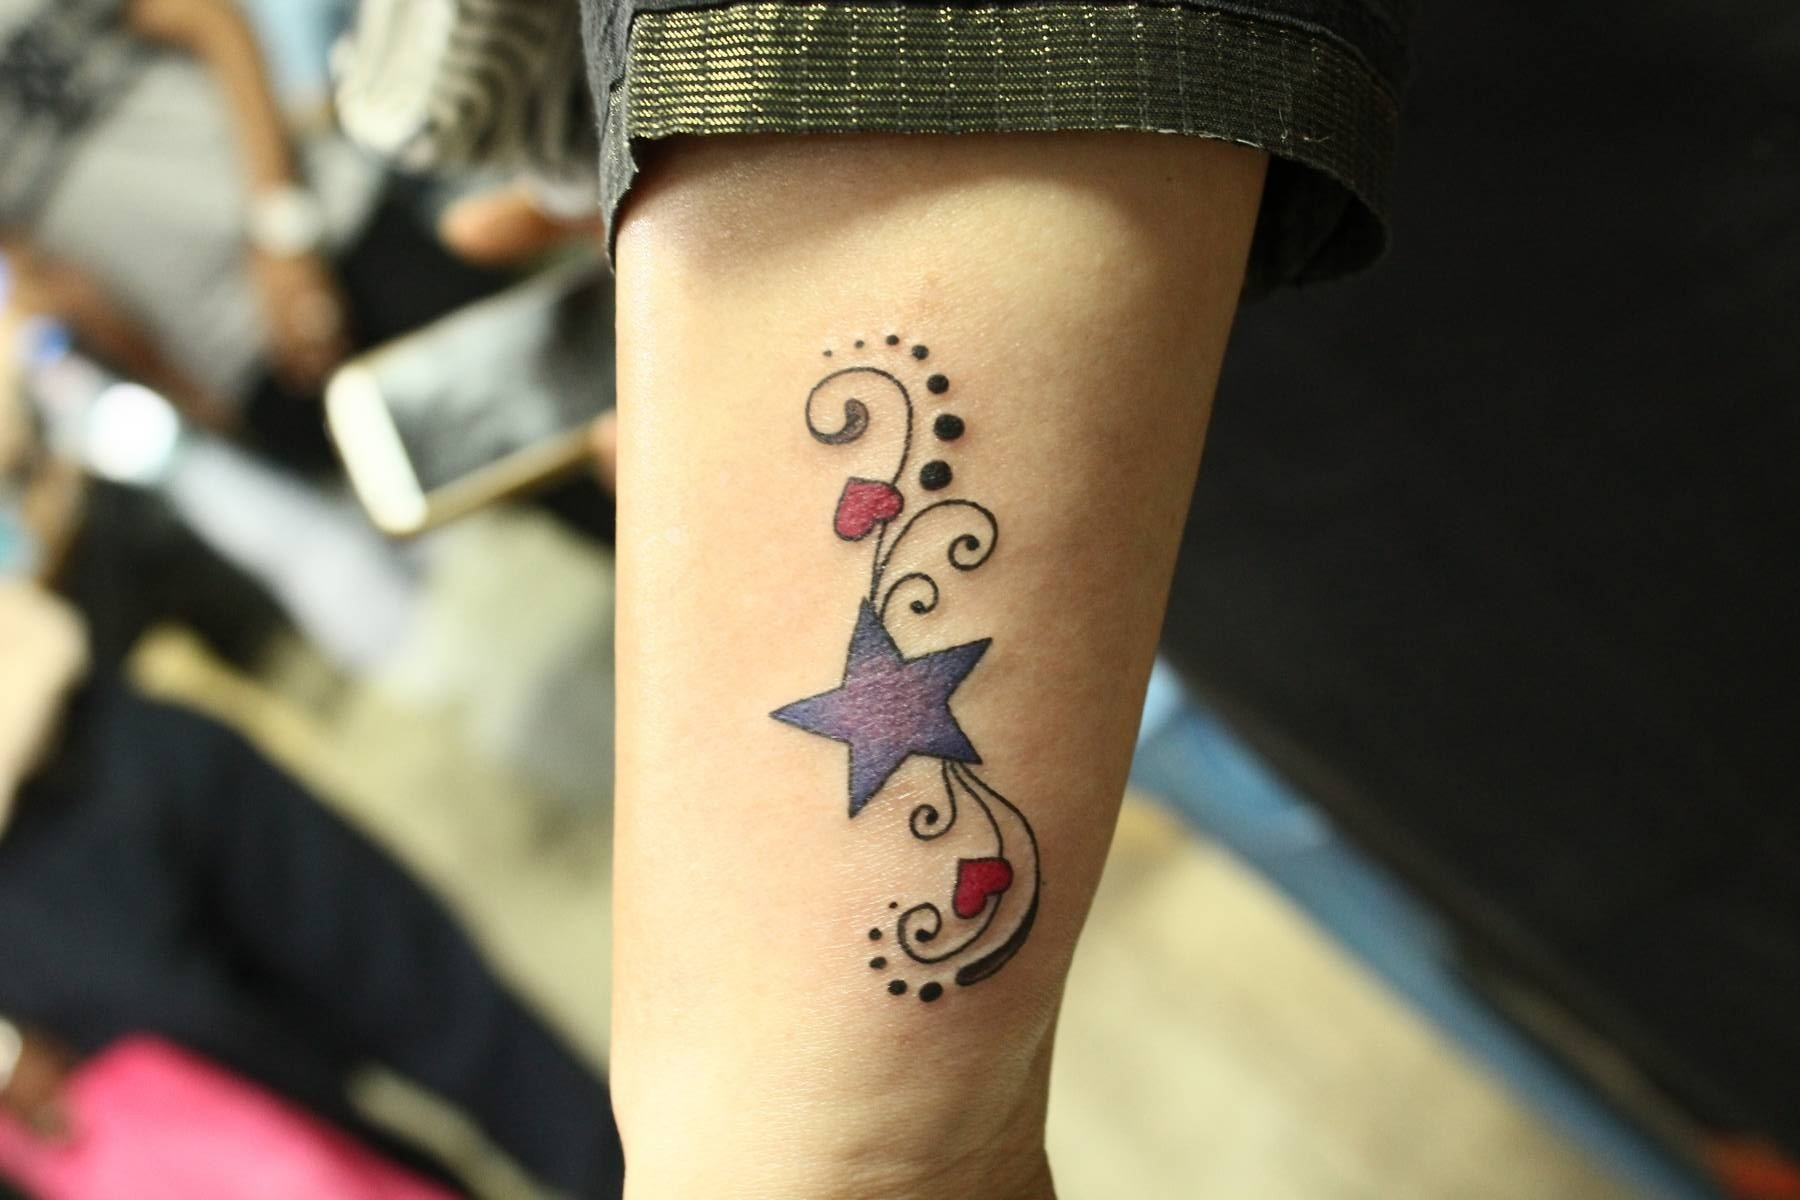 10 Great Cool Tattoo Ideas For Women minimalist tattoo ideas designs that prove subtle things can be 10 2020